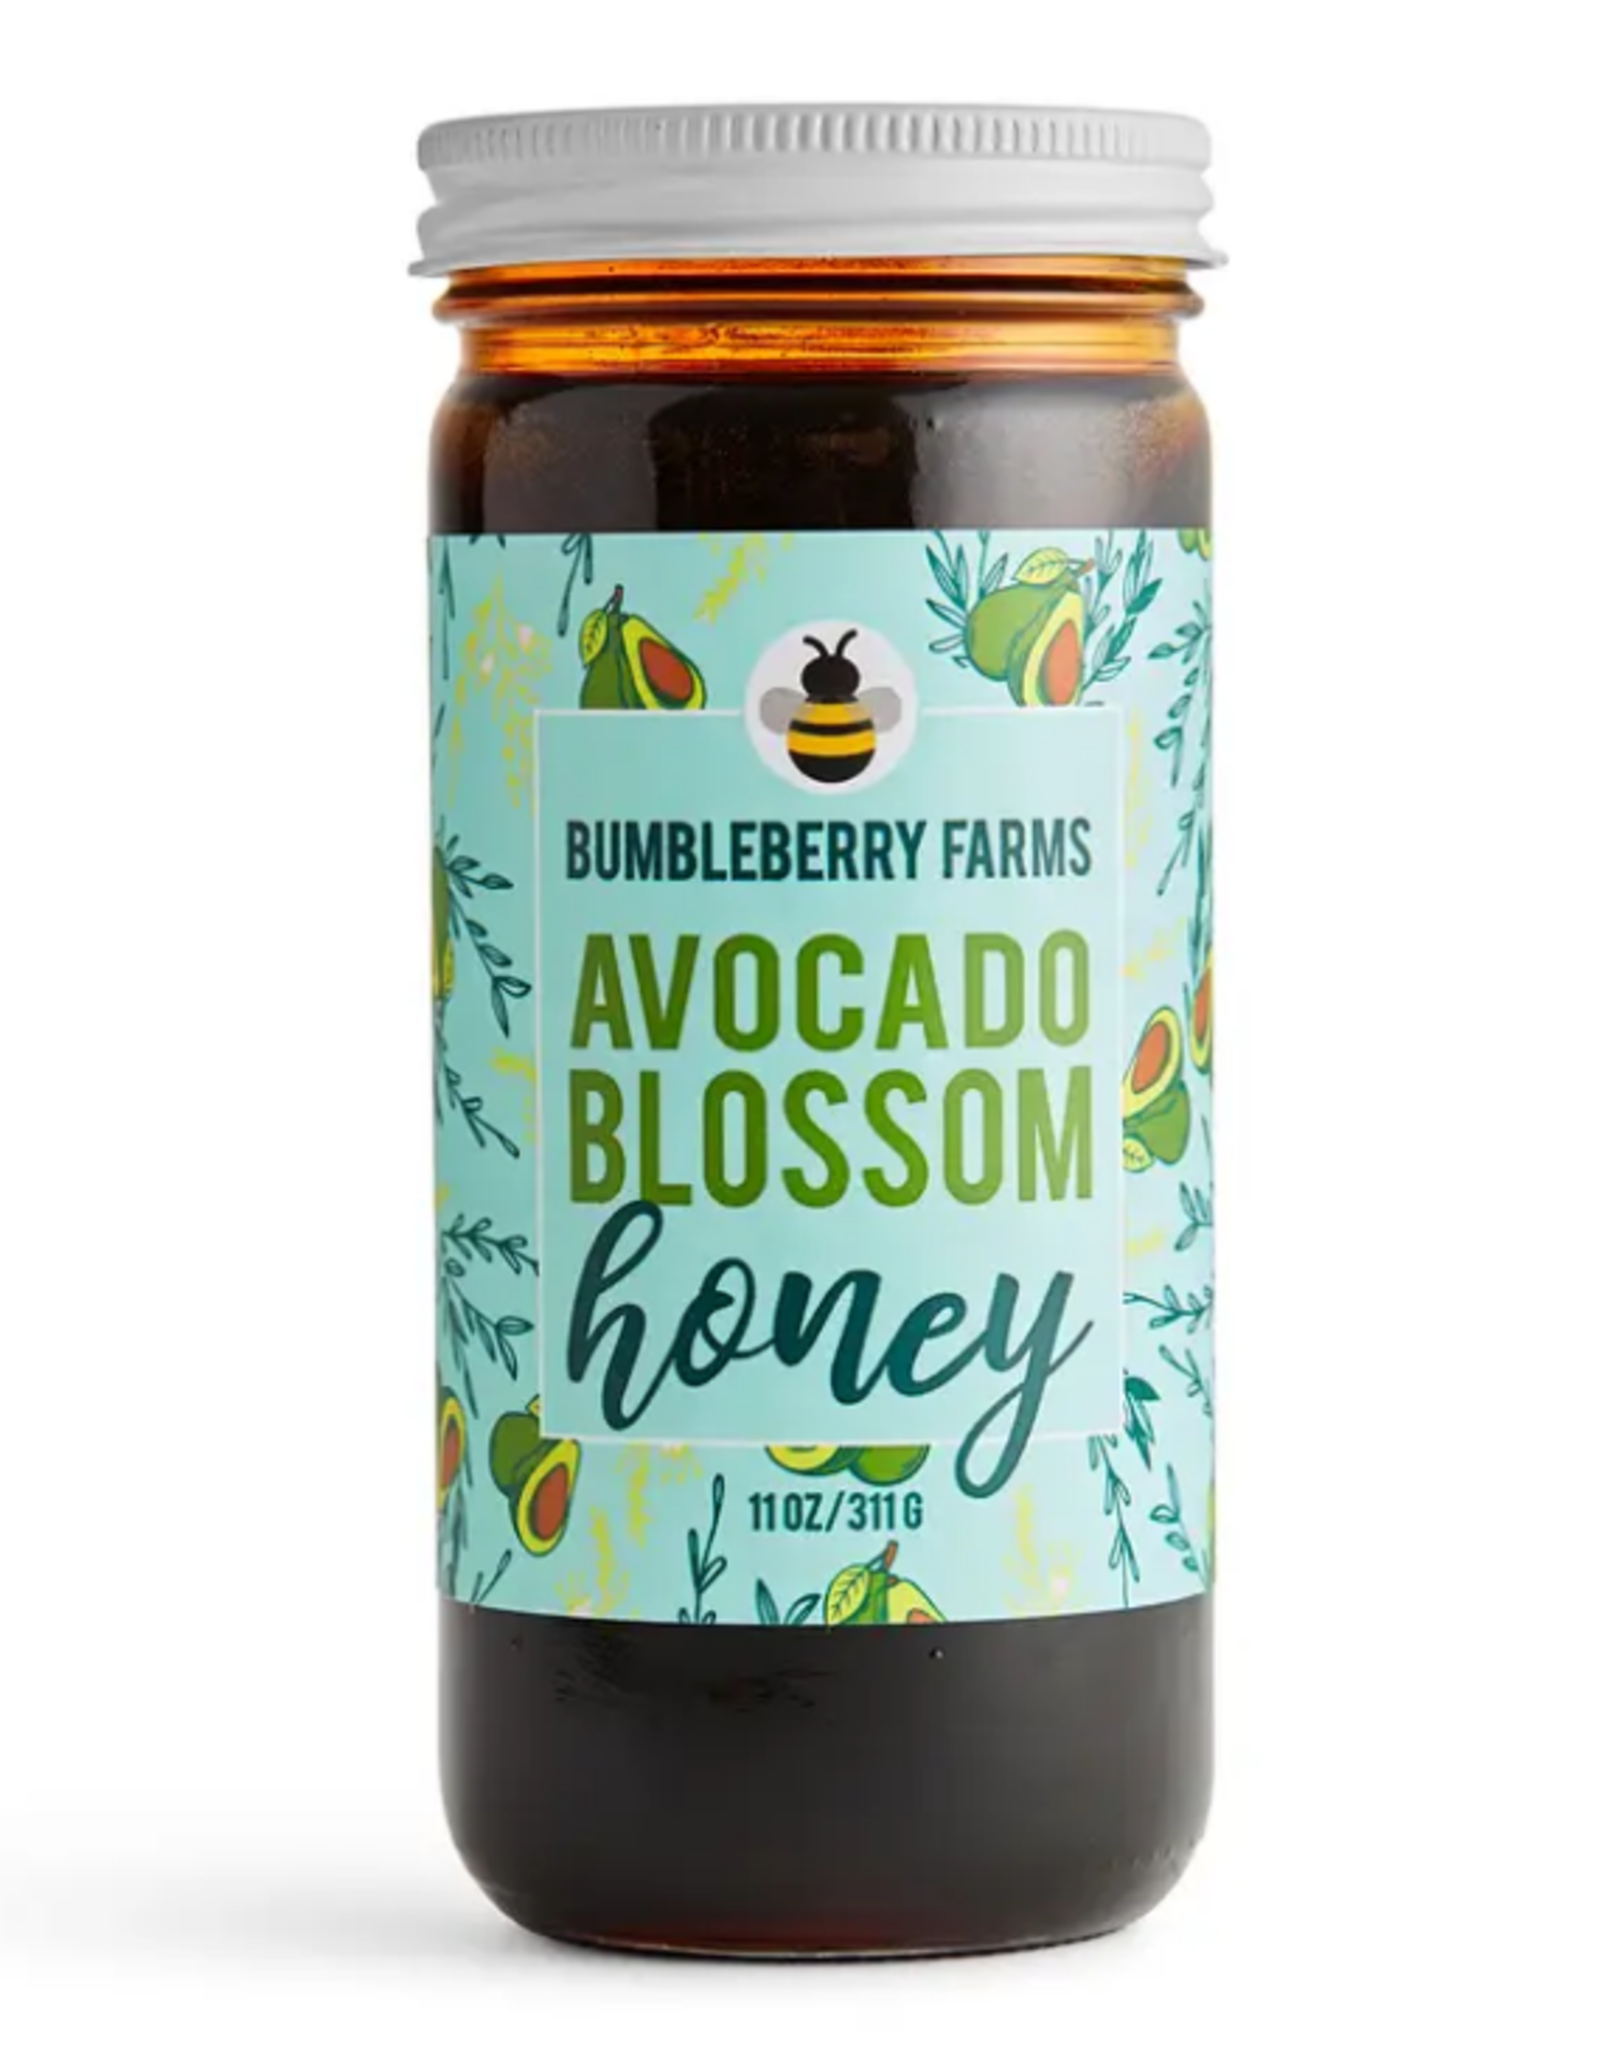 Bumbleberry Farms Avocado Blossom Honey